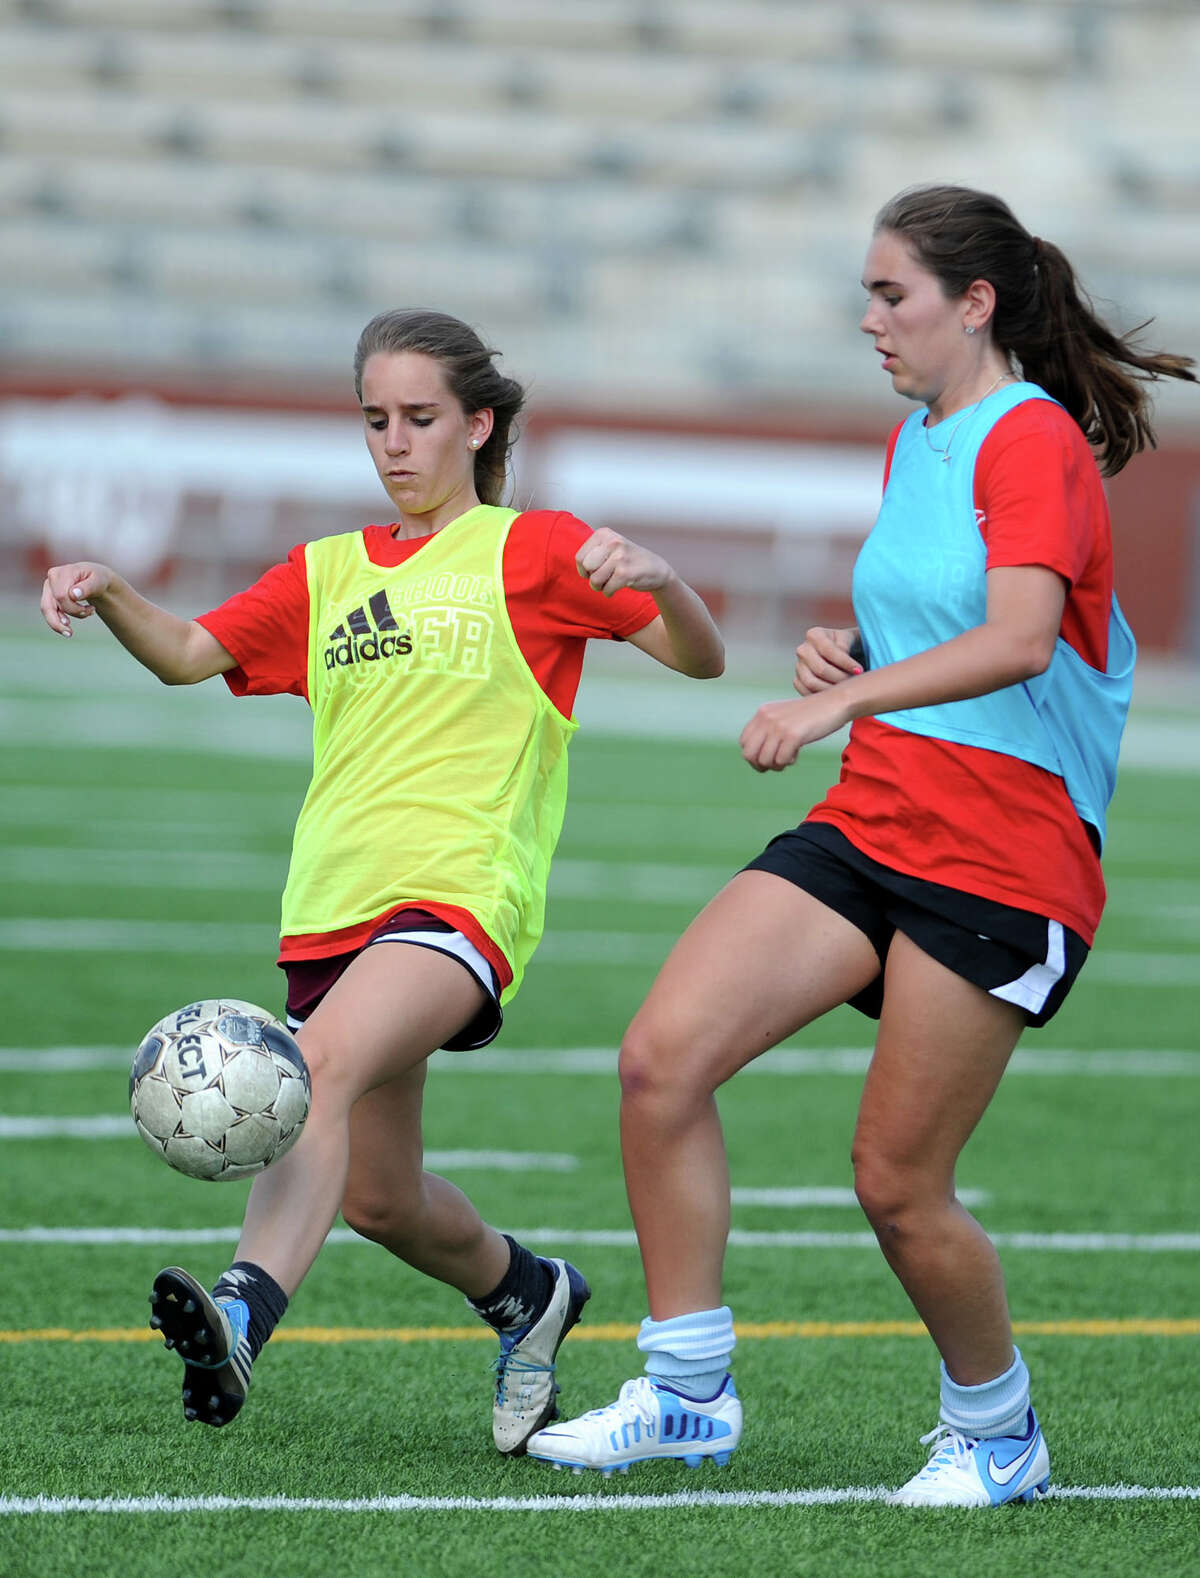 West Brook's Katharine Cox, left, drives the ball against Mechelle Falgout during practuce at the Carrol A.